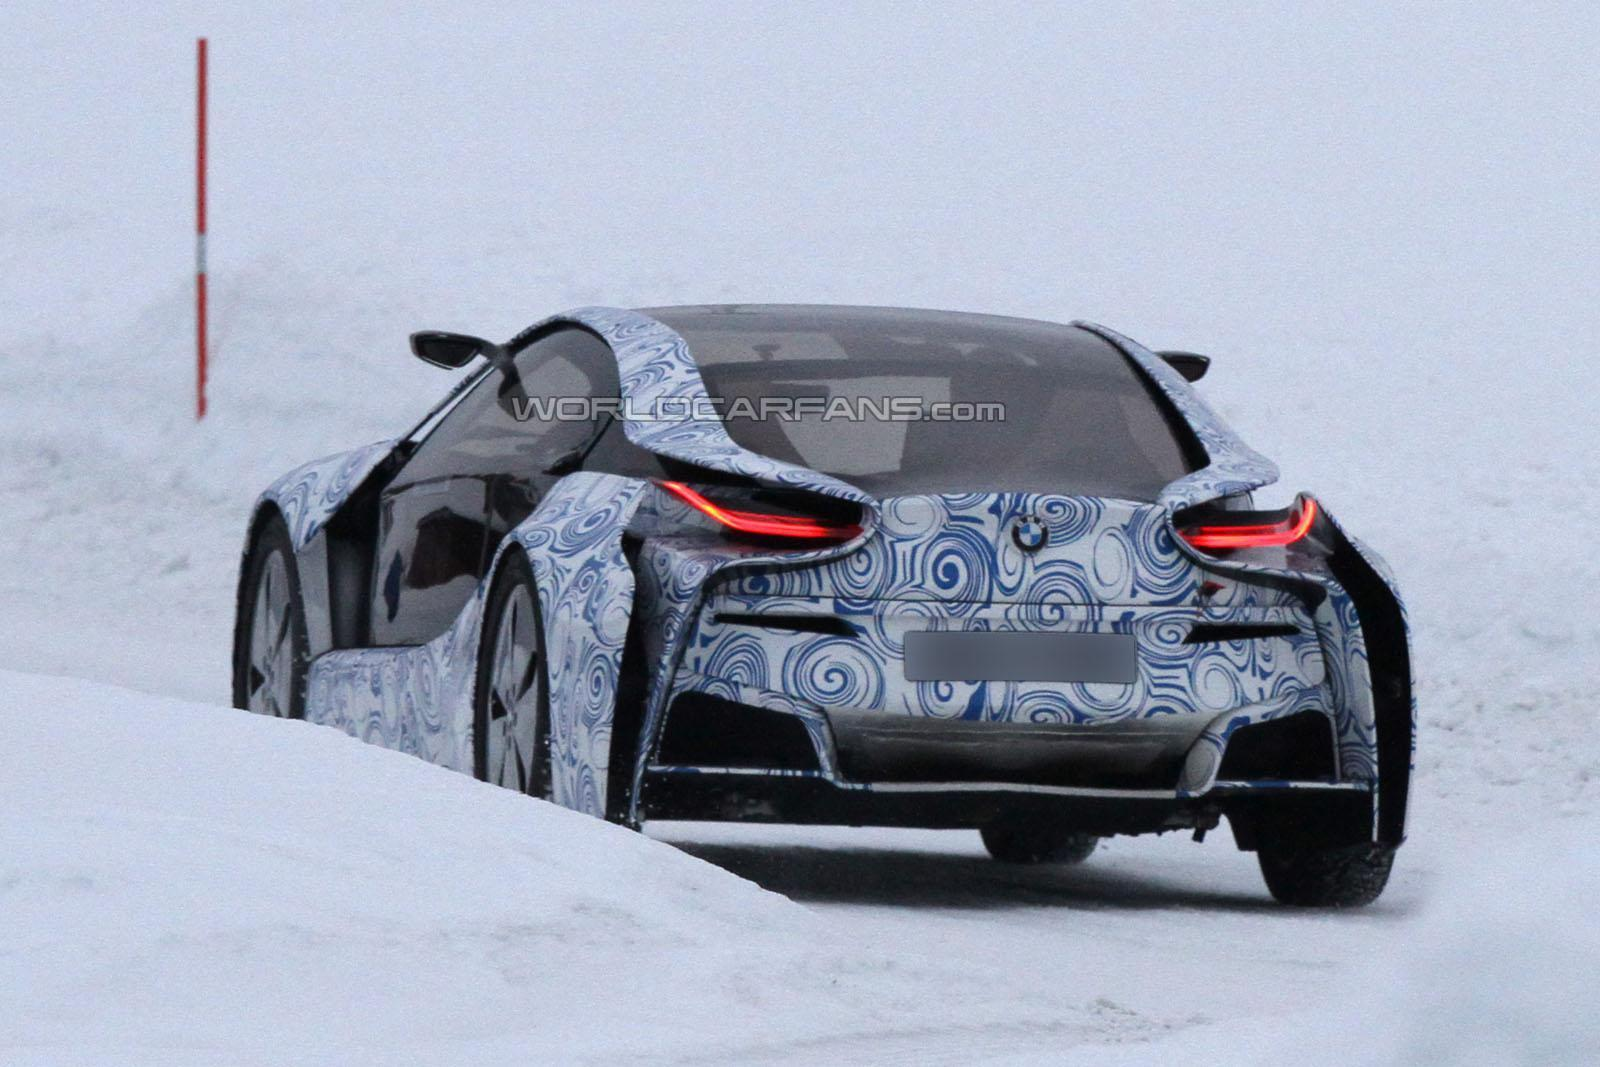 VIDEO: BMW testing the limits of the new i8 on ice